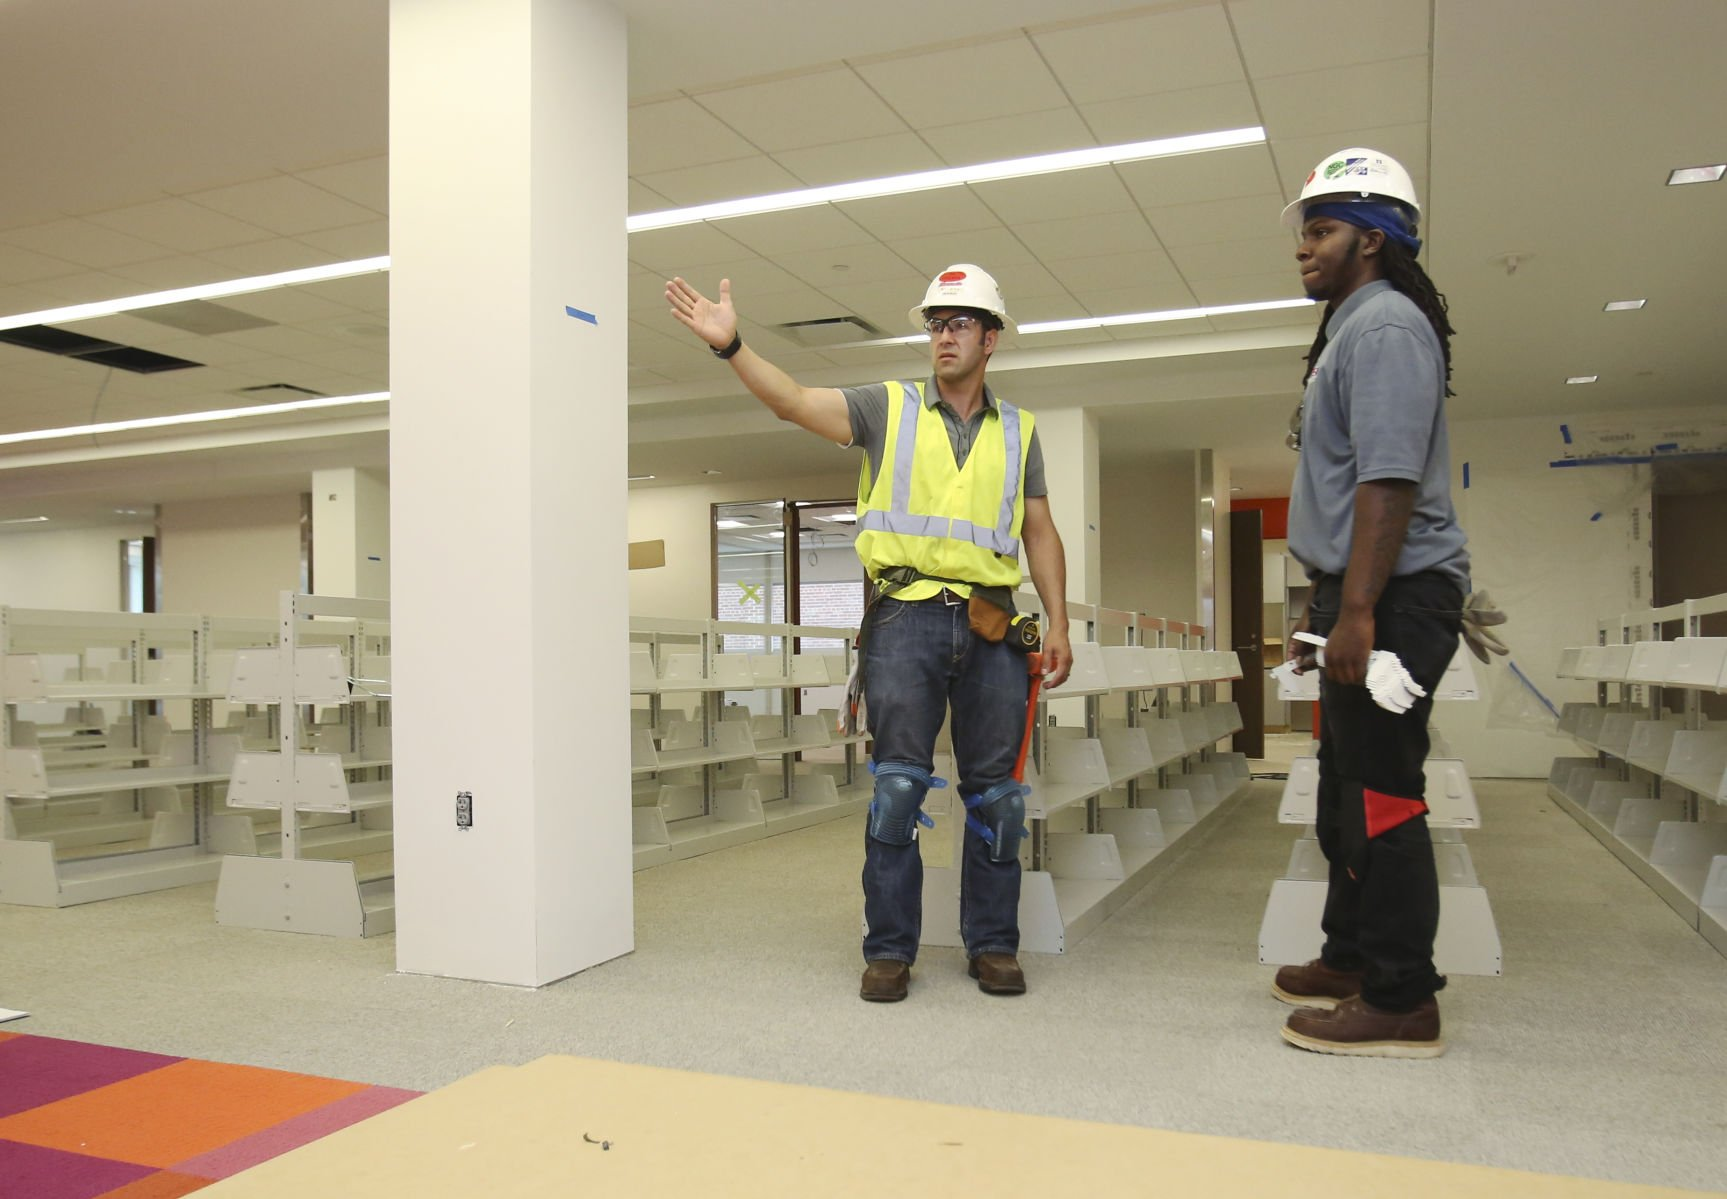 Isaac Ortega, Field Supervisor, And Darrion Freeman, Lead Installer, From Midwest  Storage Solutions, Inc. Of Omaha, Discuss Spacing Of The Shelves In The ...